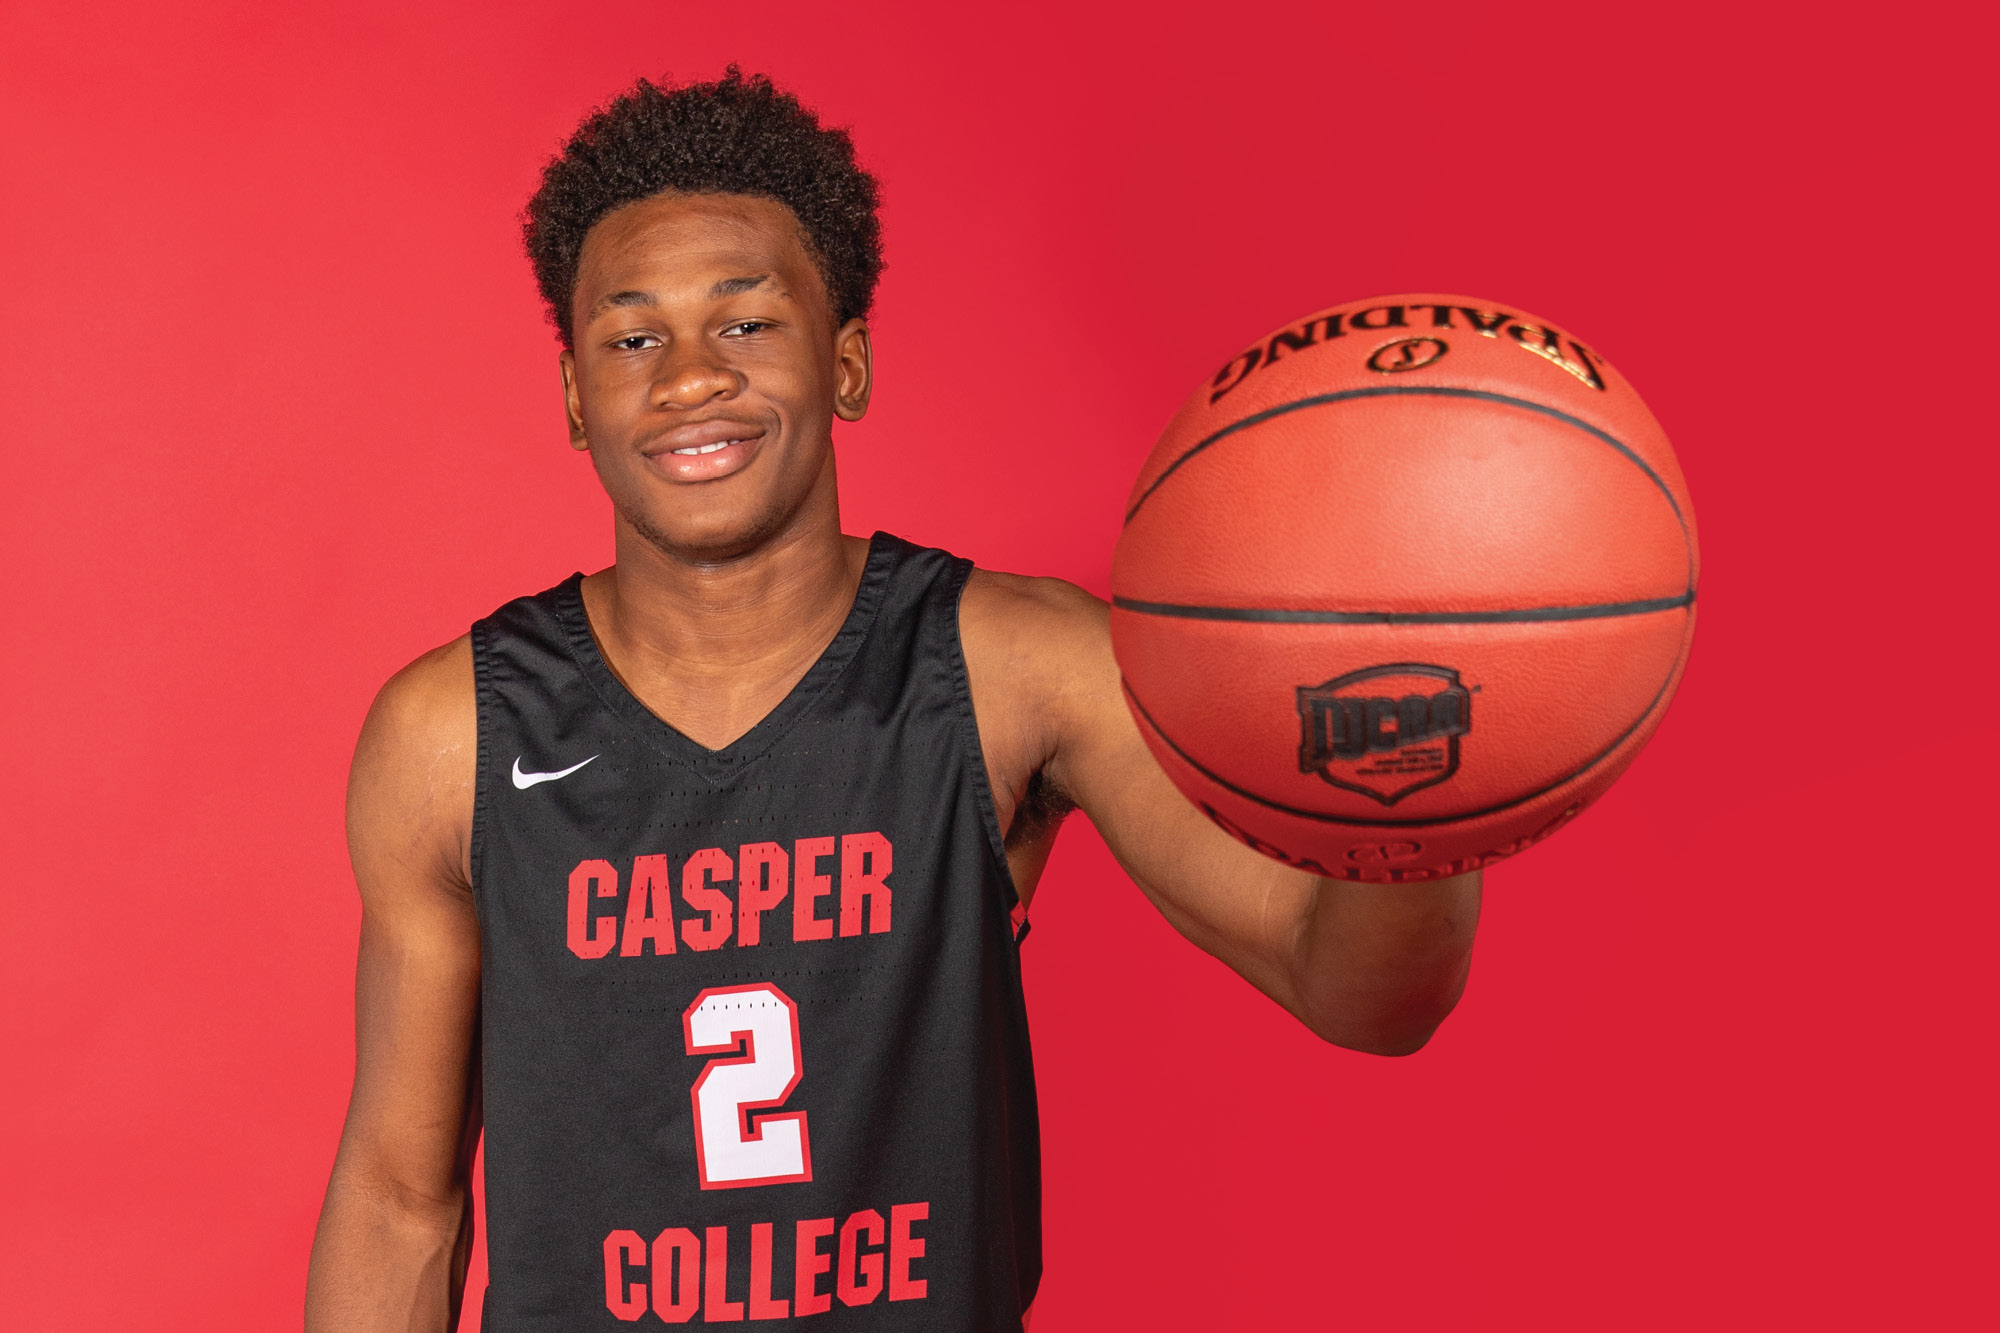 Photo of Casper College basketball player David Walker holding a basketball.